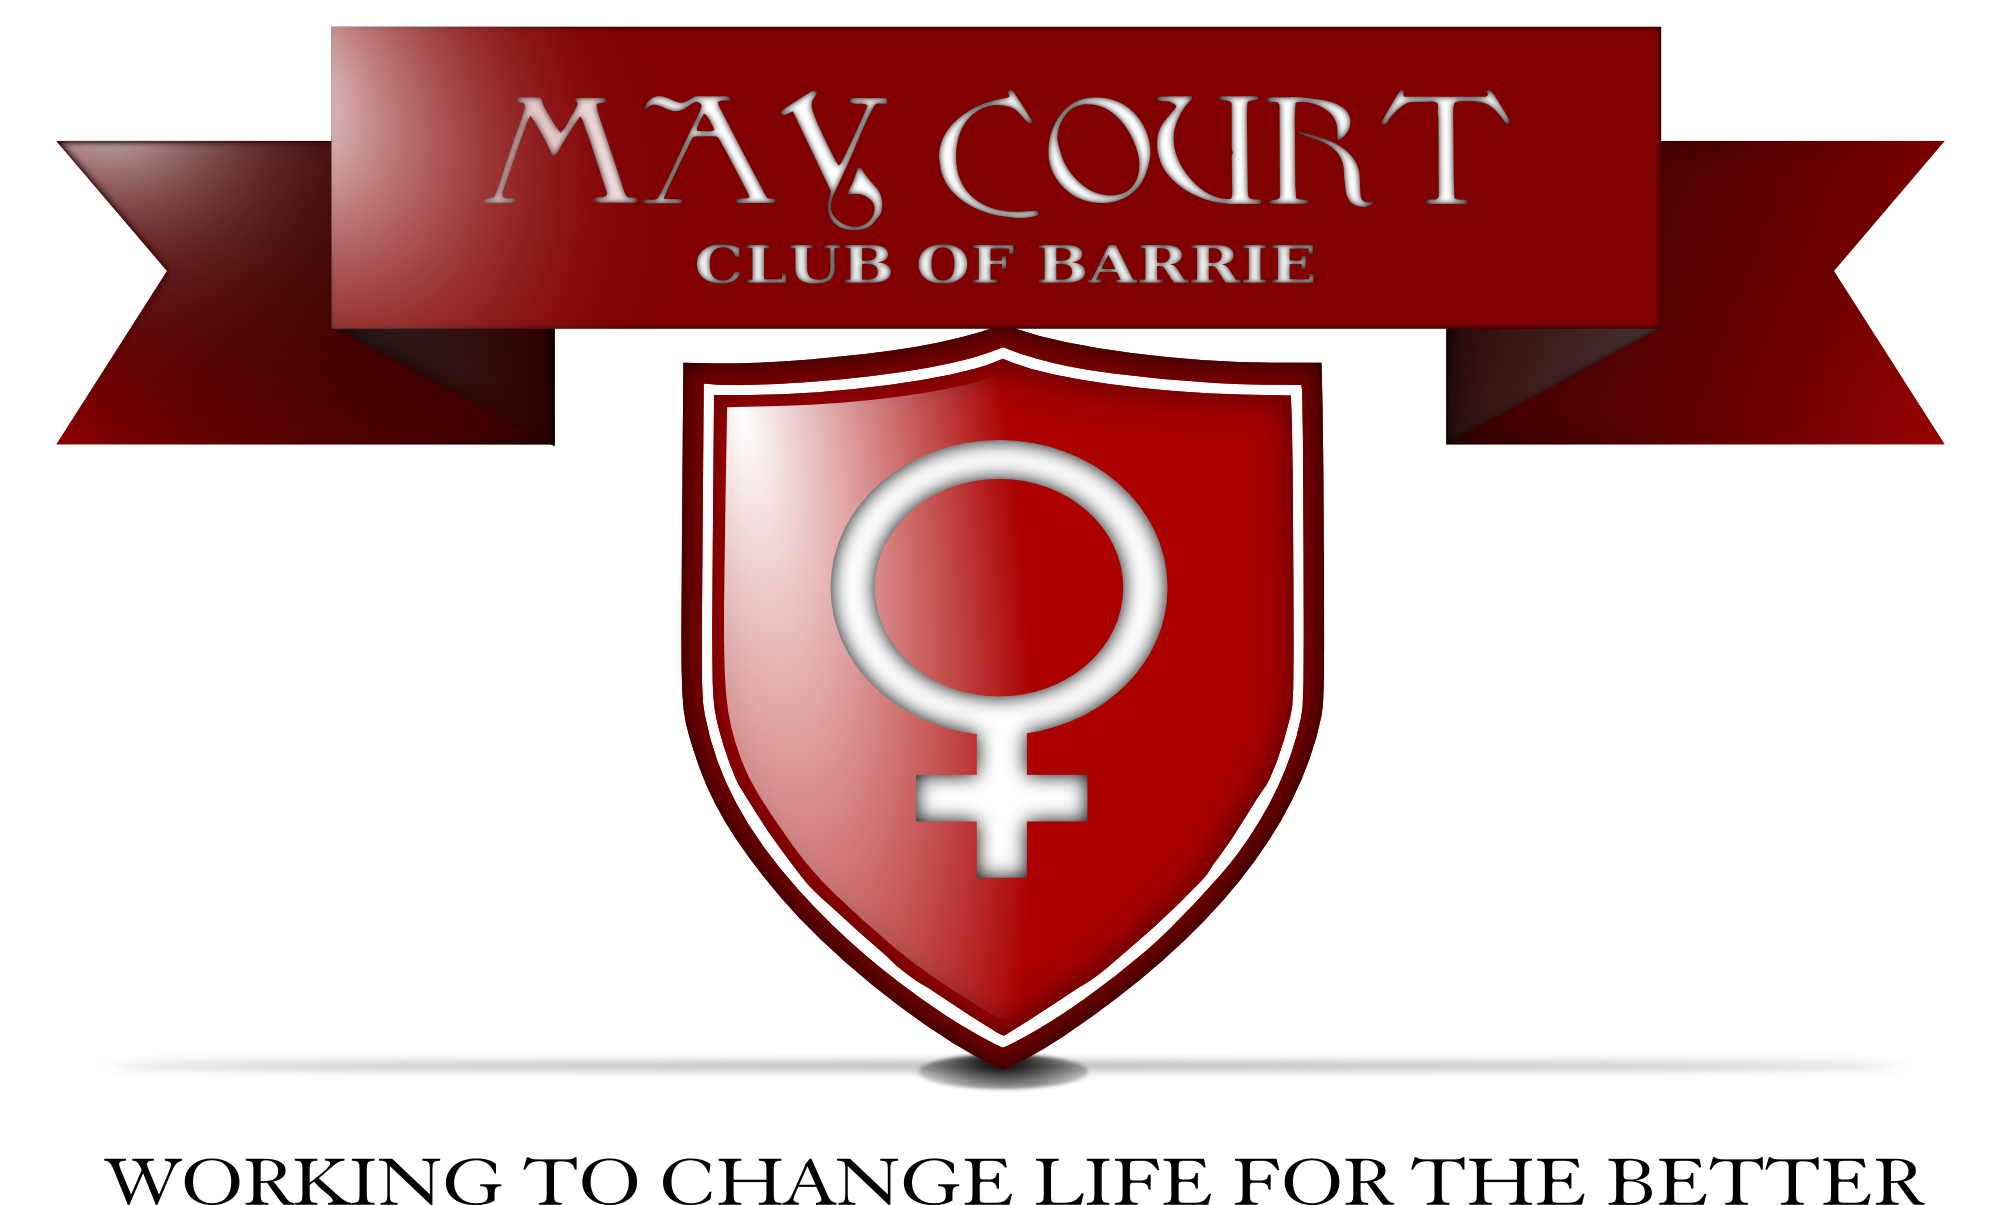 Logo Design by whoosef - Entry No. 23 in the Logo Design Contest New Logo Design for MAY COURT CLUB OF BARRIE.